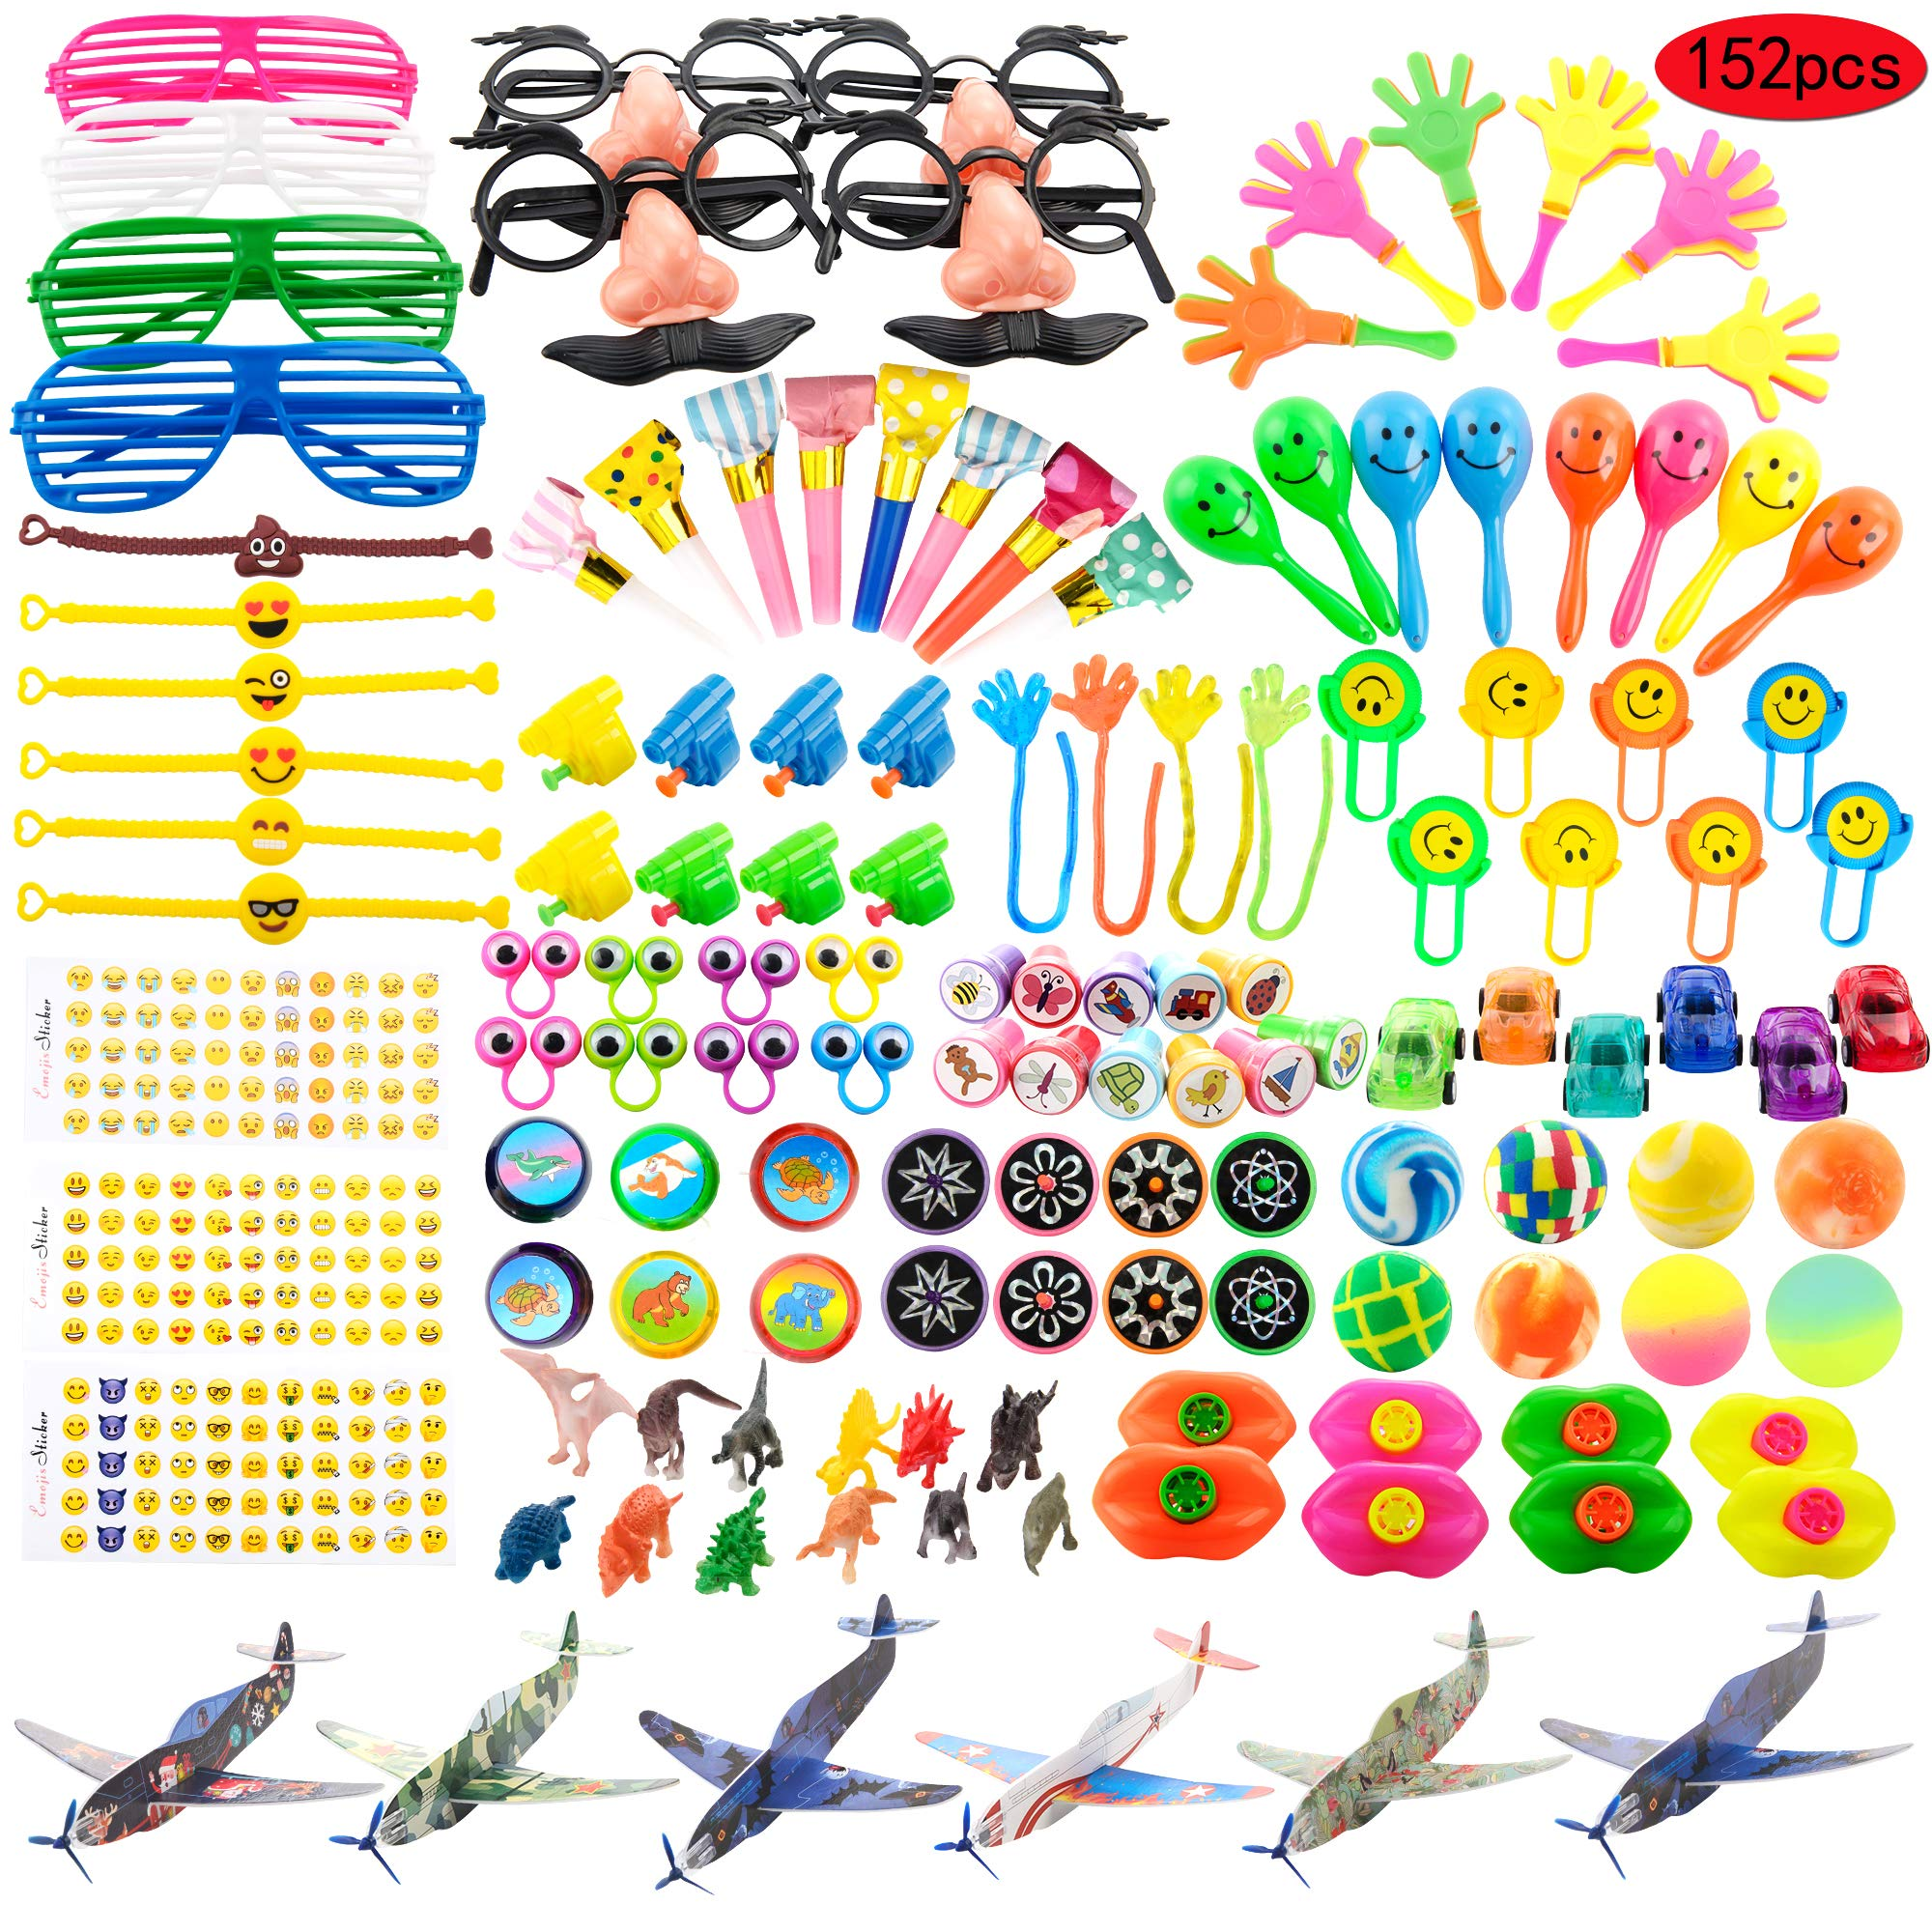 Kissdream 152PCS Carnival Prizes for Kids Birthday Party Favors Prizes Box Toy Assortment for Classroom by Kissdream